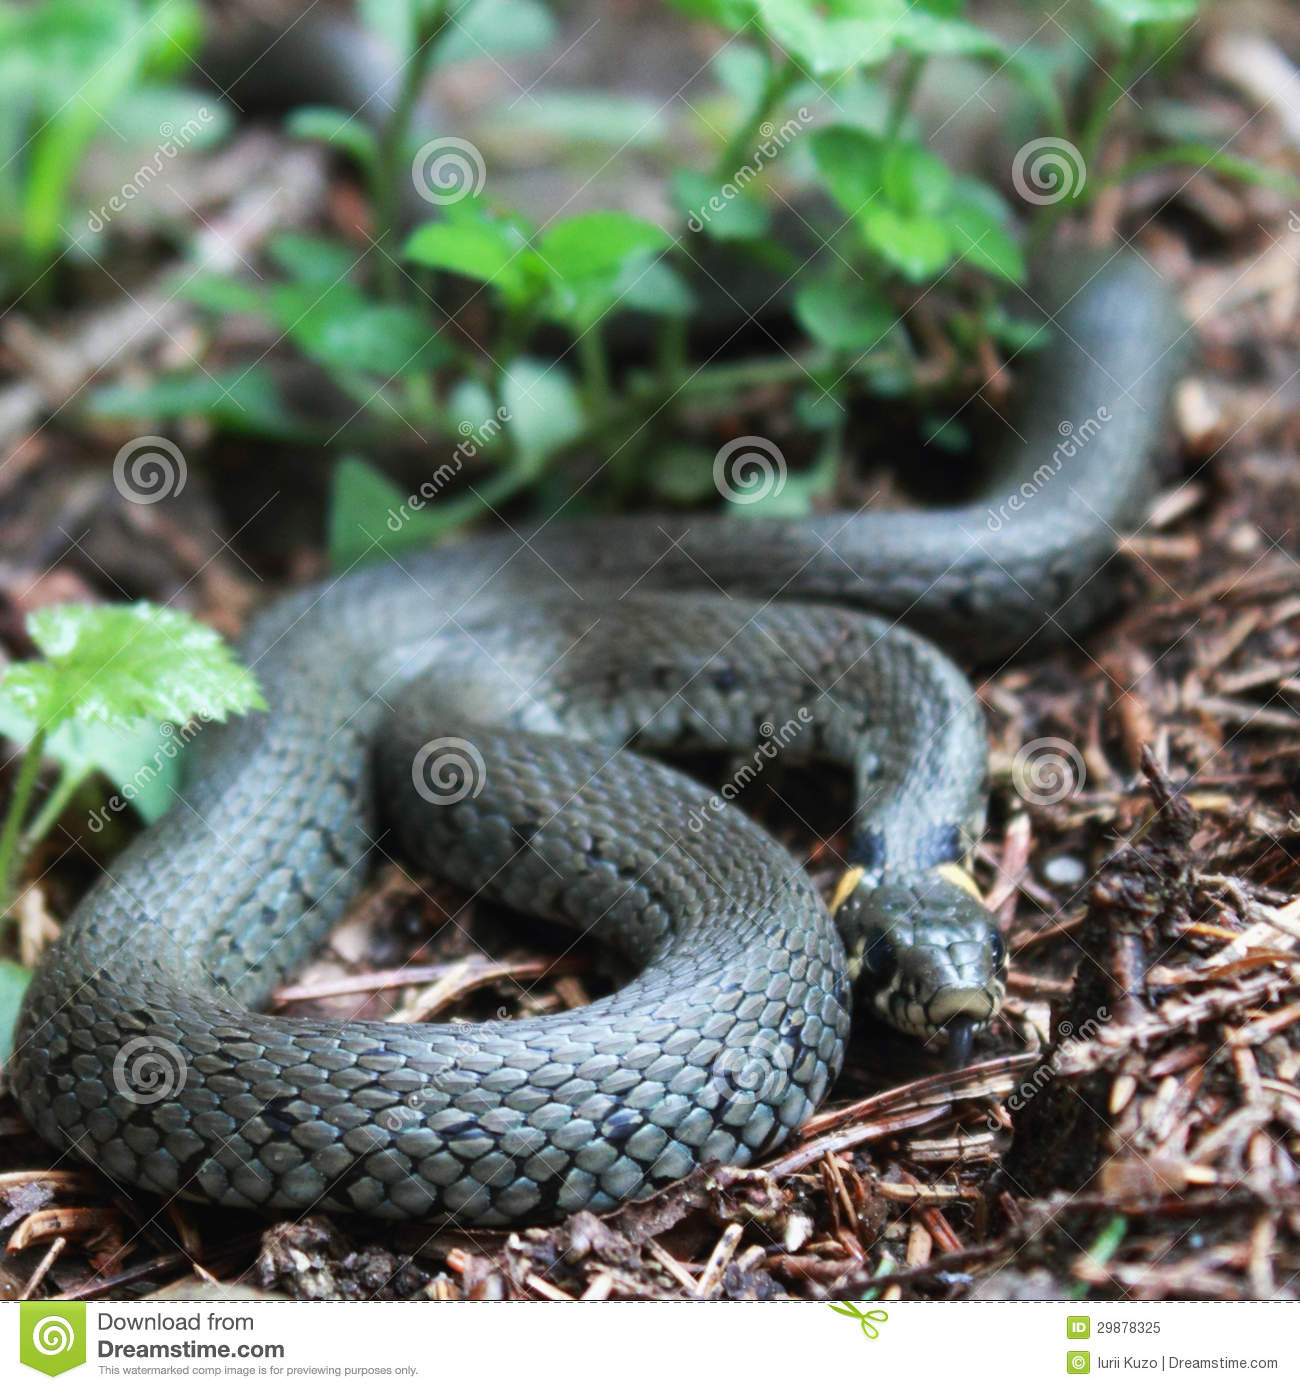 Nonpoisonous Snake Serpent Stock Image Image Of Slithering 29878325